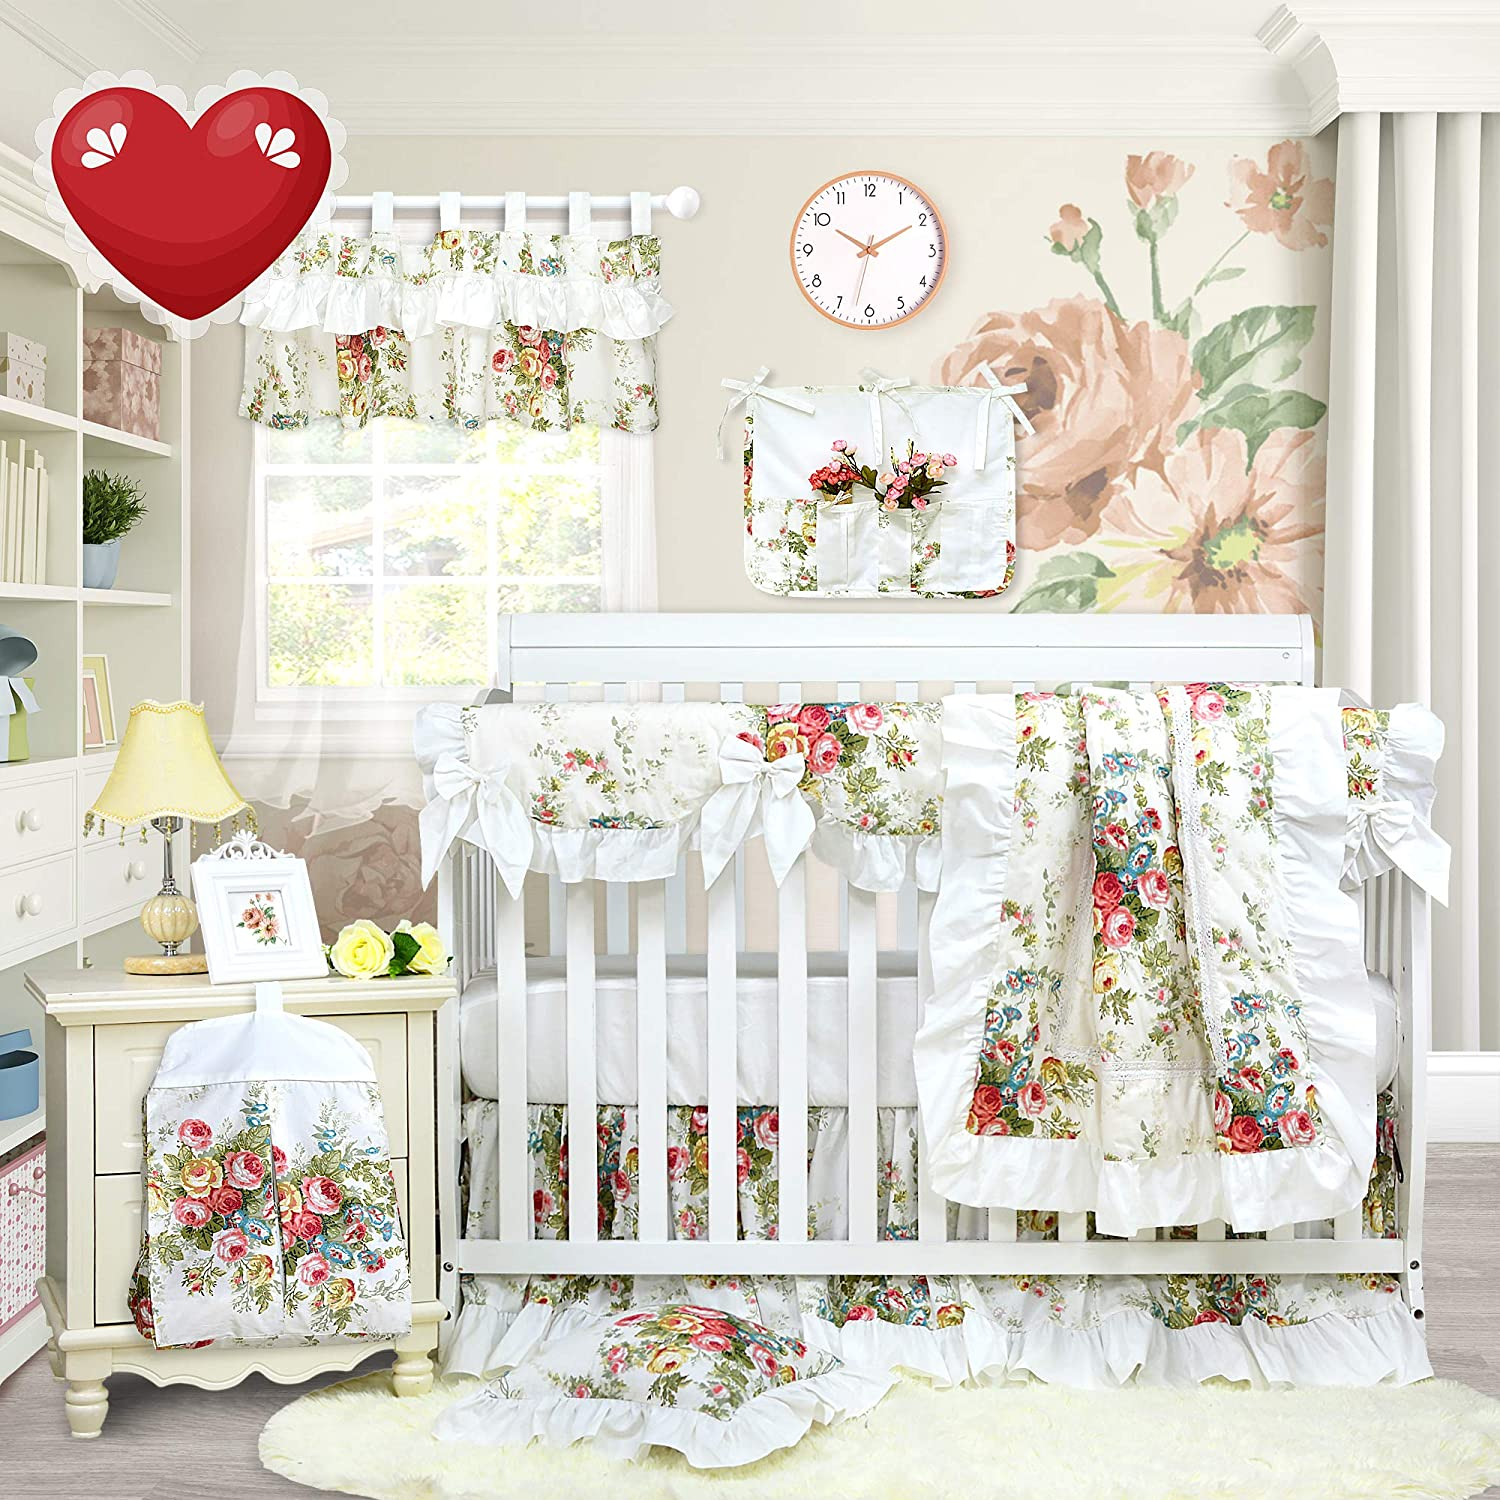 Brandream Crib Bedding Sets for Girls 9pieces Baby Nursery Crib Rail Cover Sets with 2 Packs Fitted Crib Sheets Set, 100% Cotton Floral Designer Crib Sets